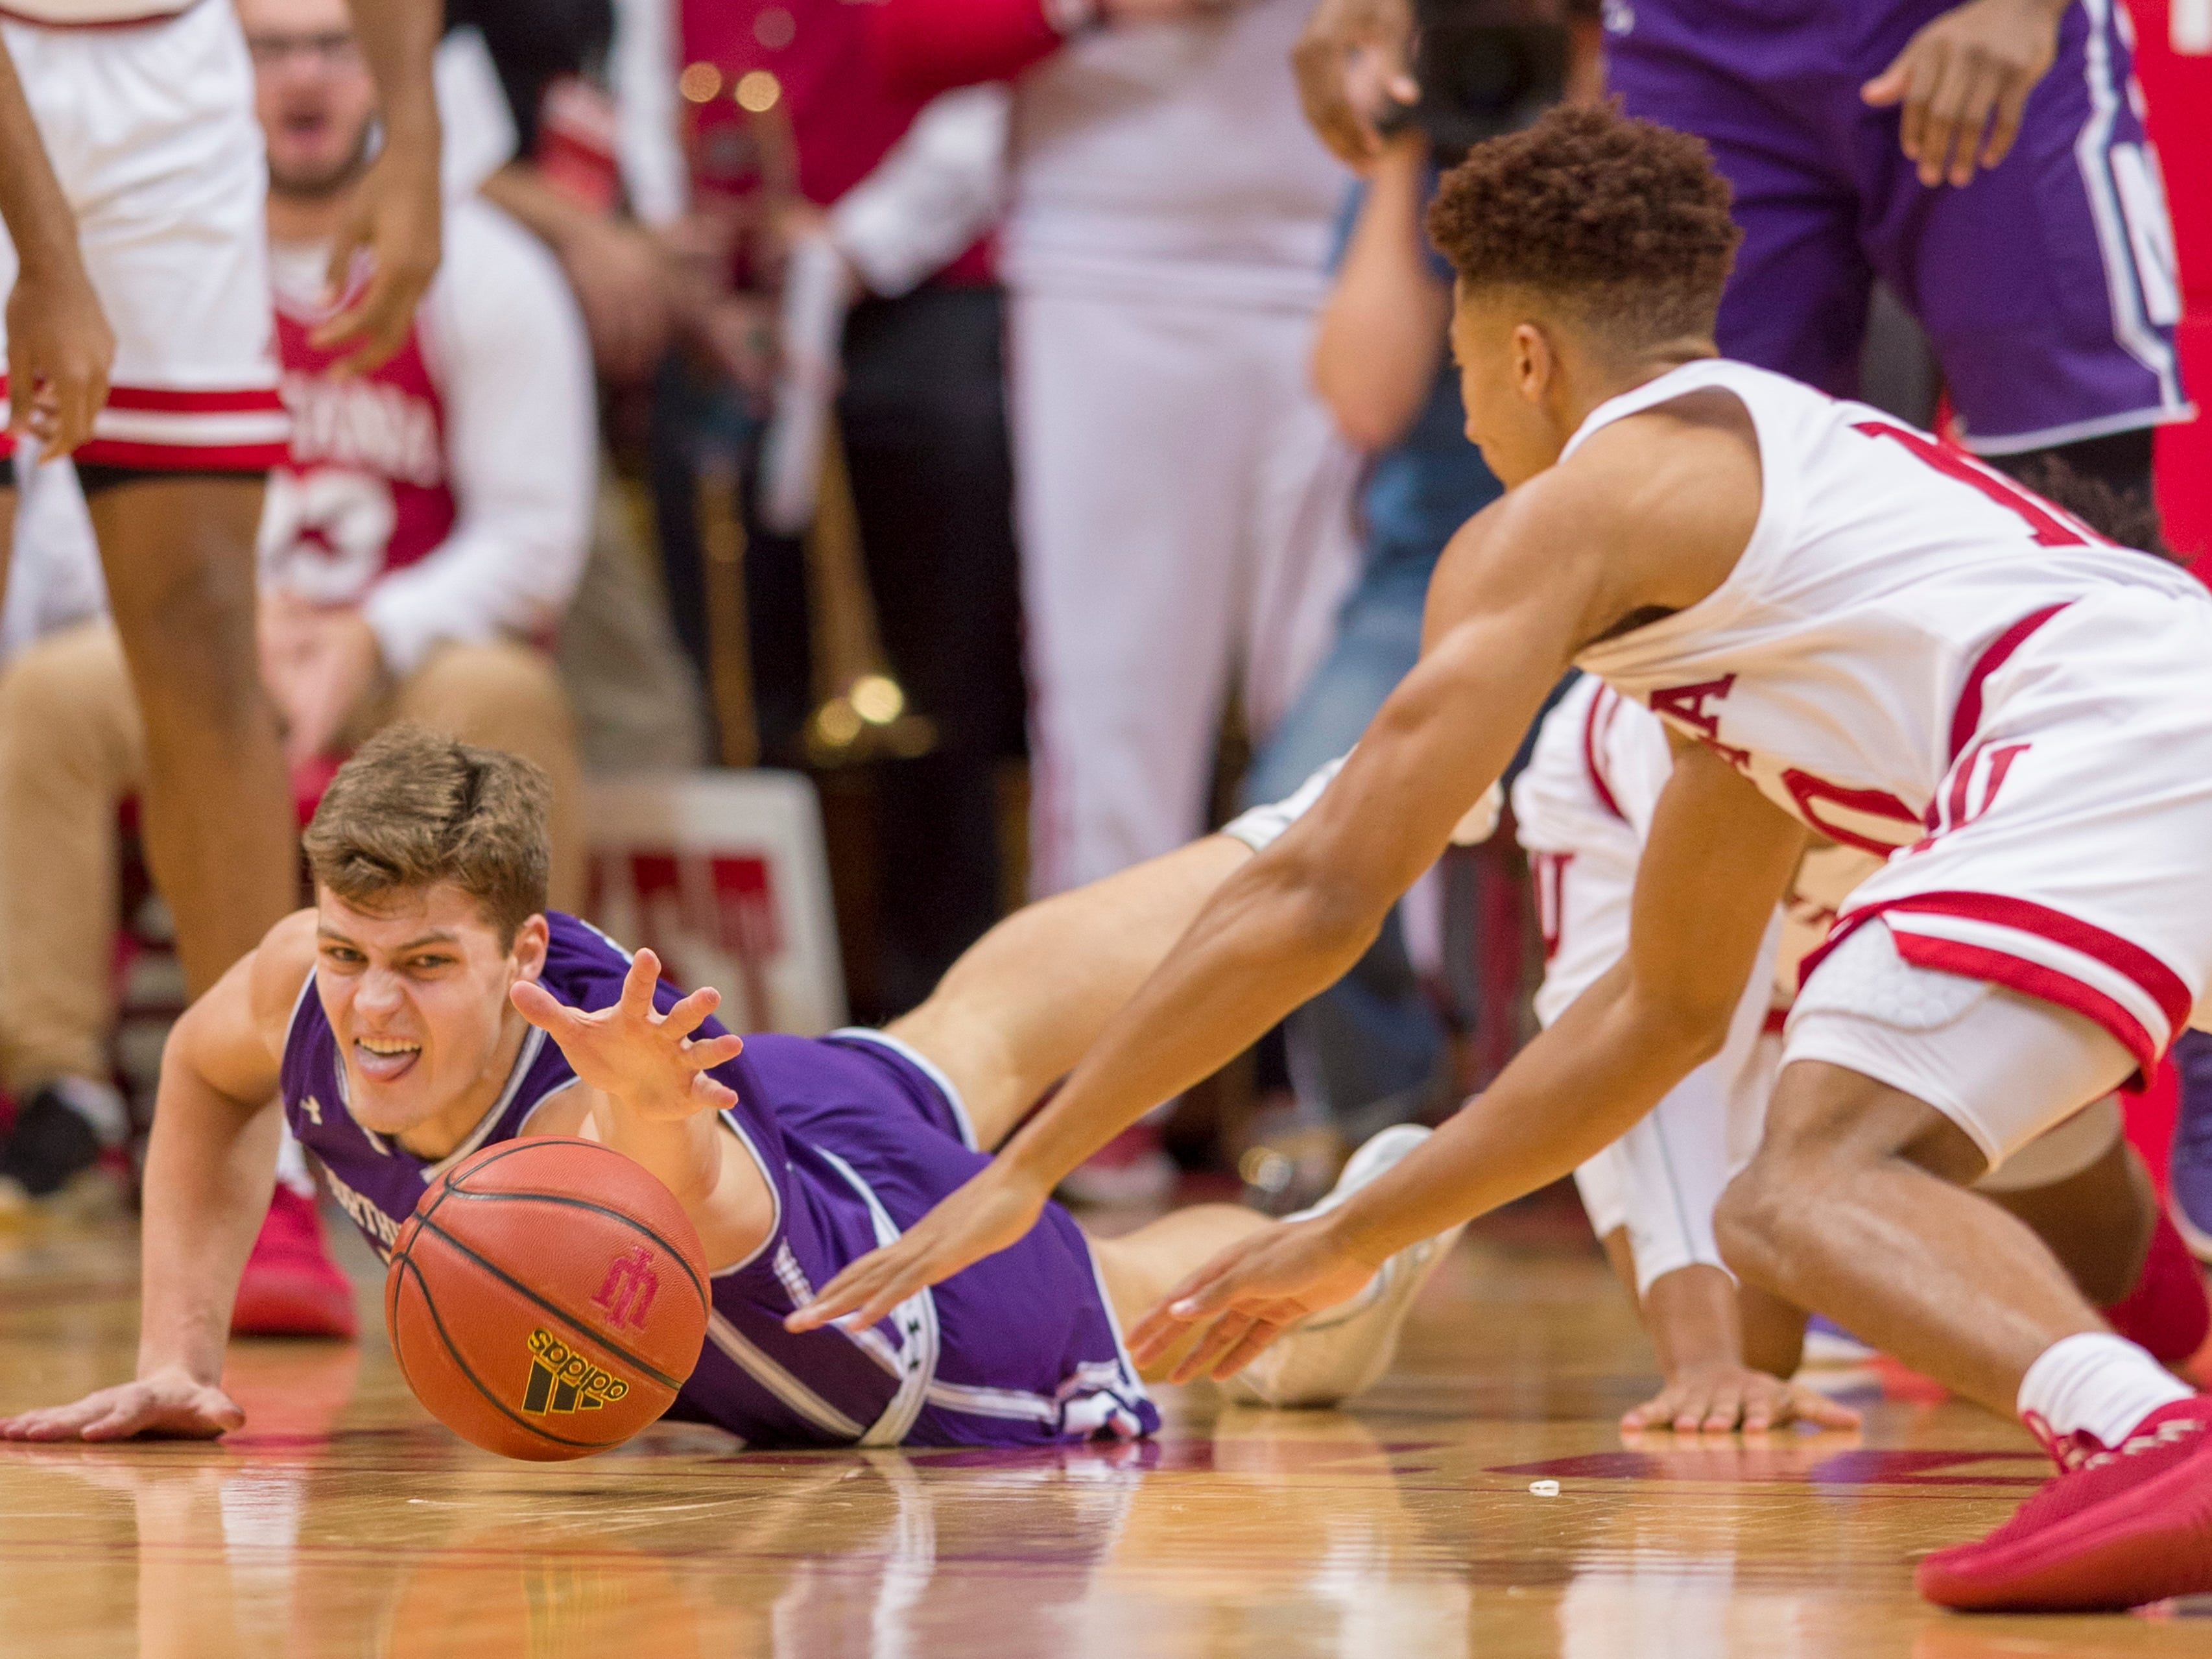 Northwestern forward Miller Kopp (10) dives for the ball after crashing to the floor during the first half of an NCAA college basketball game against Indiana Saturday, Dec. 1, 2018, in Bloomington, Ind.